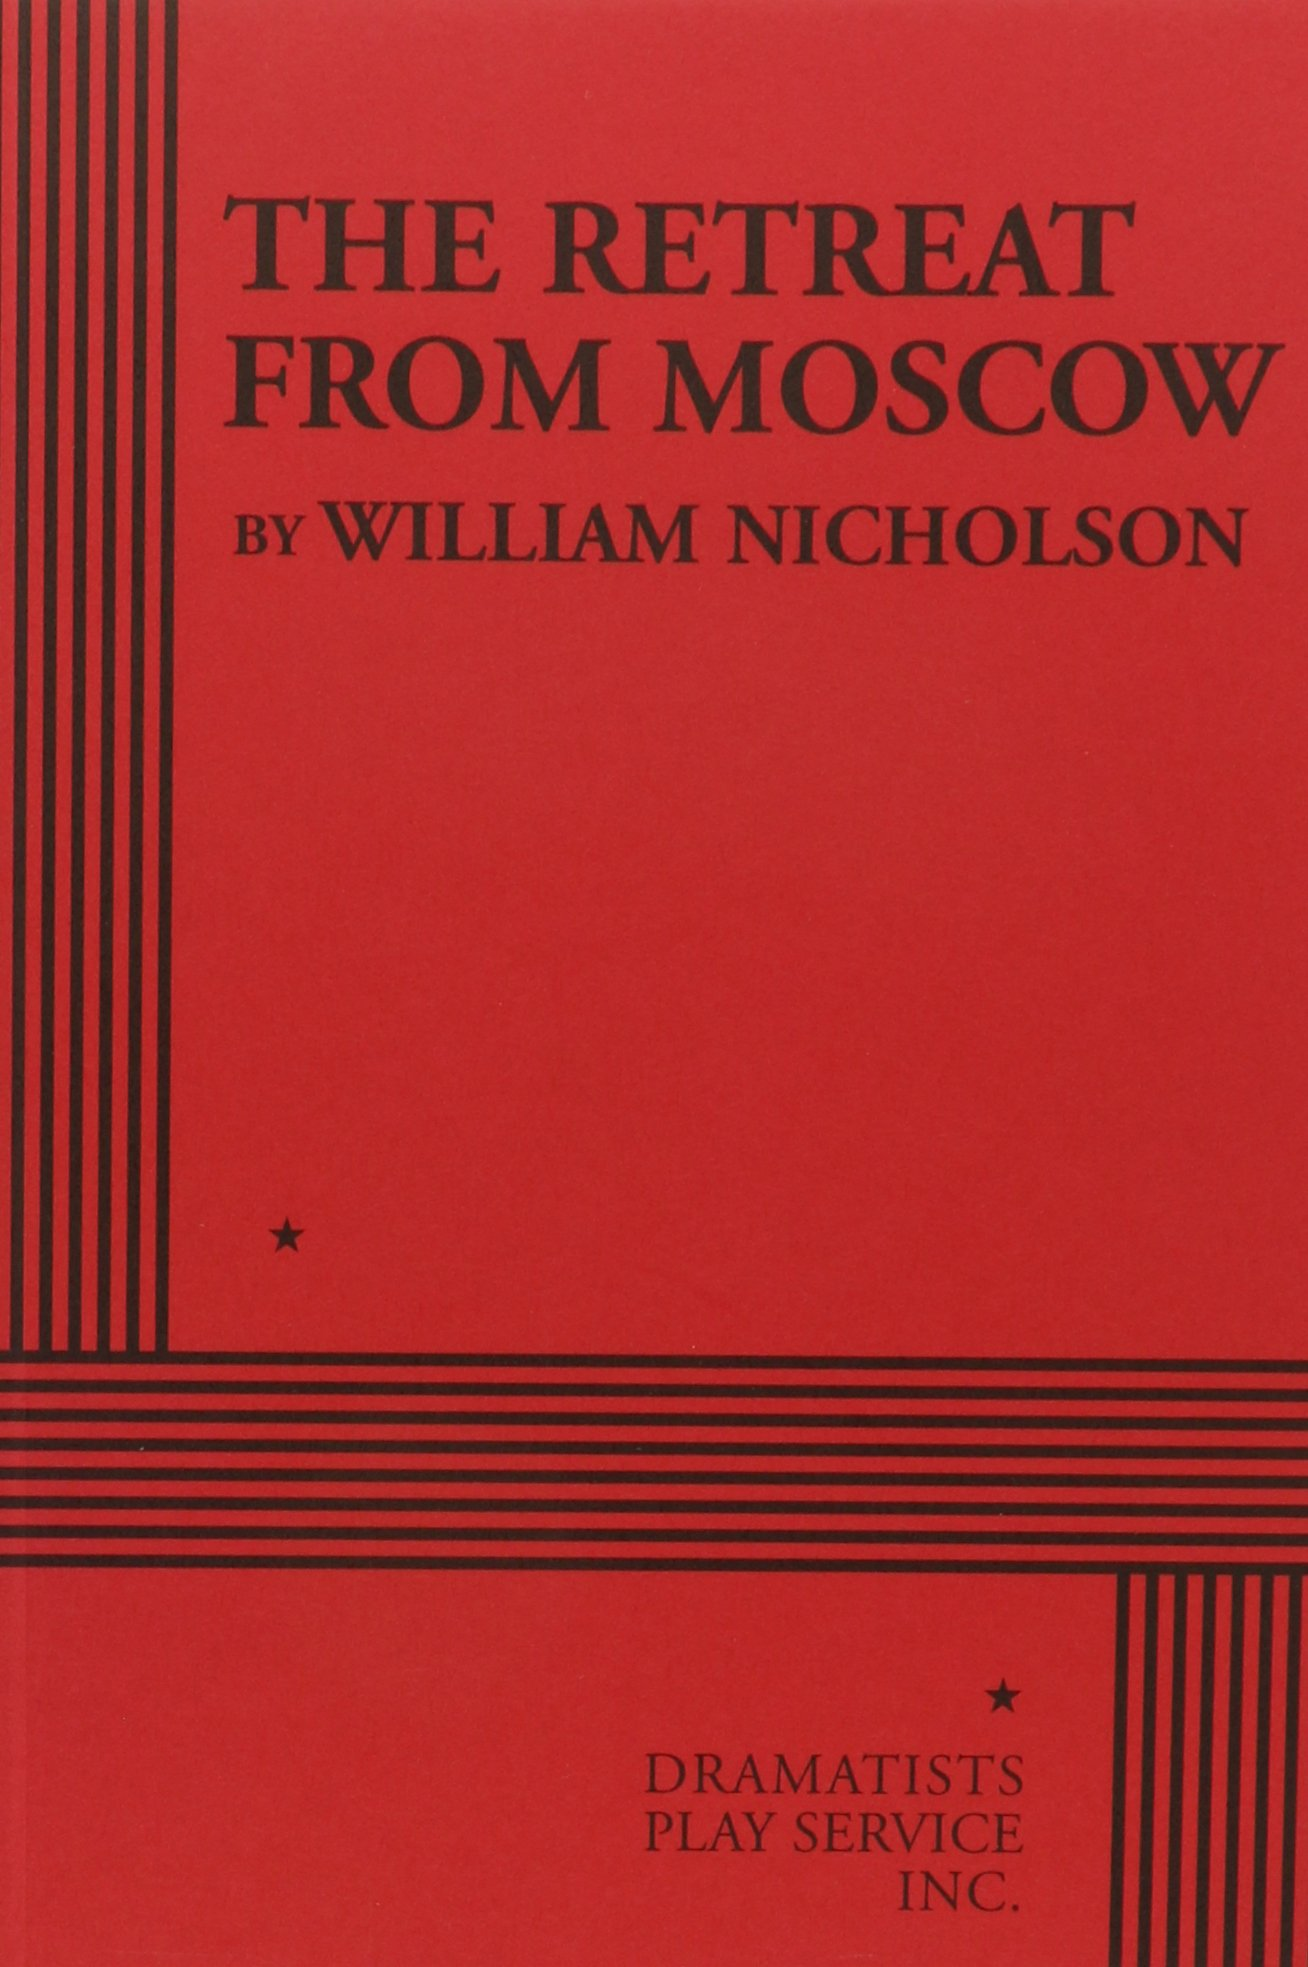 Download The Retreat from Moscow - Acting Edition (Acting Edition for Theater Productions) ebook